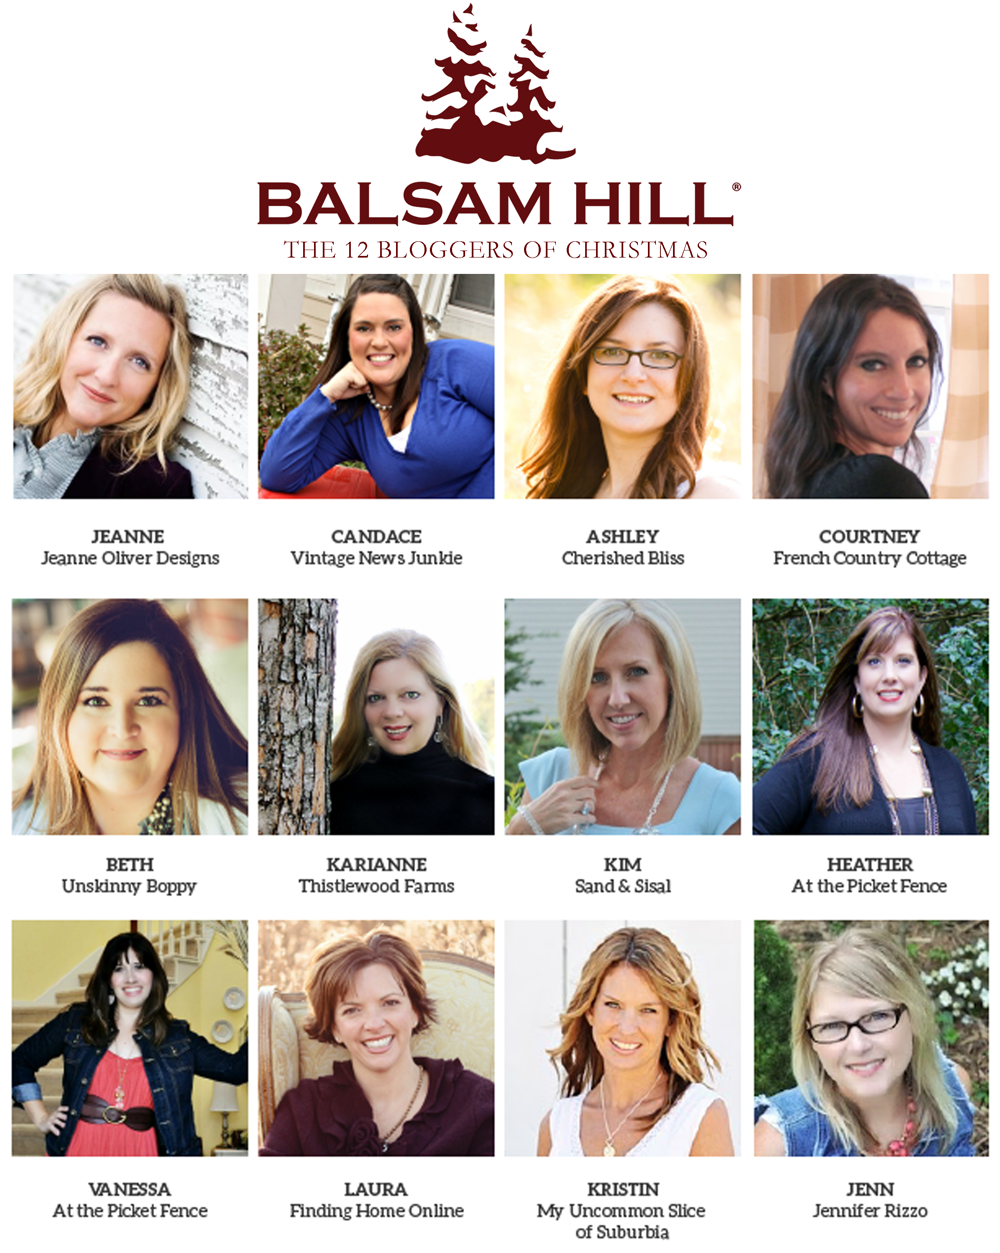 Balsam Hill 12 Bloggers of Christmas